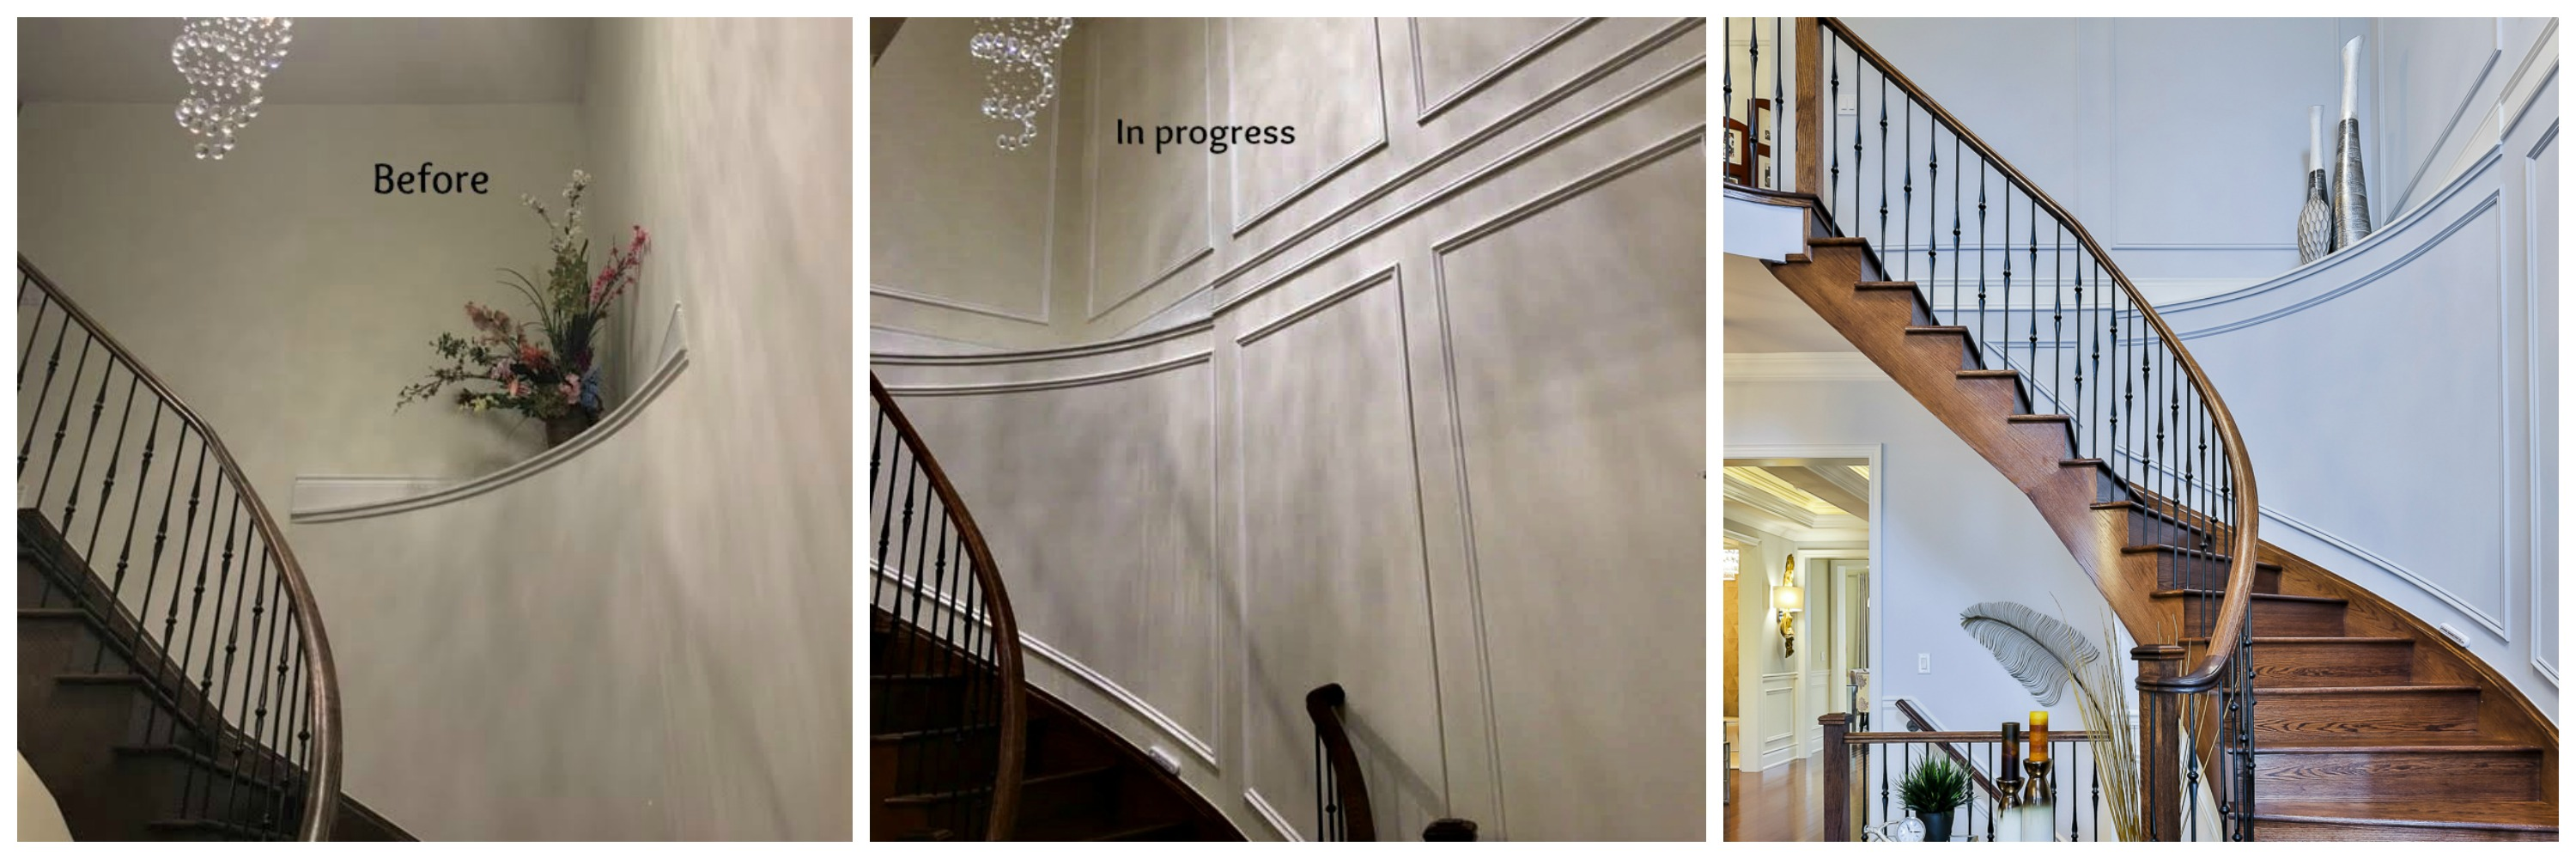 Staircase wall work